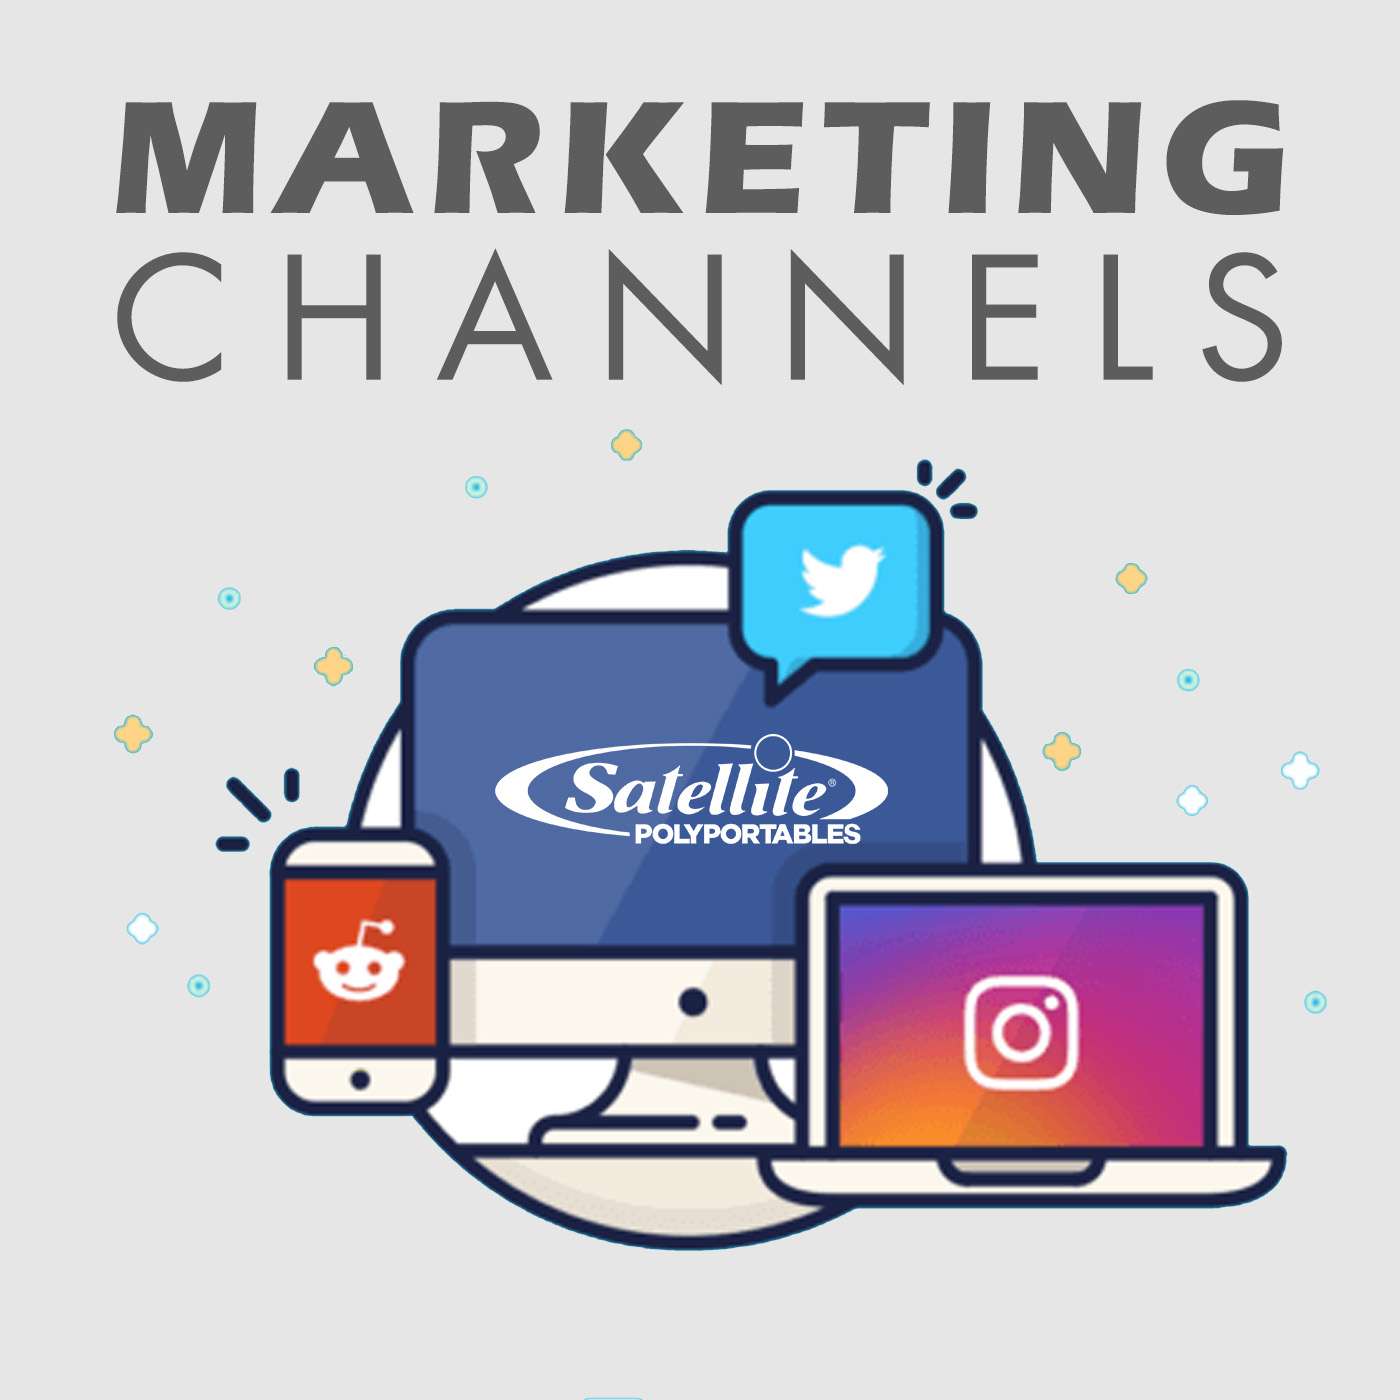 Marketing Channel featured